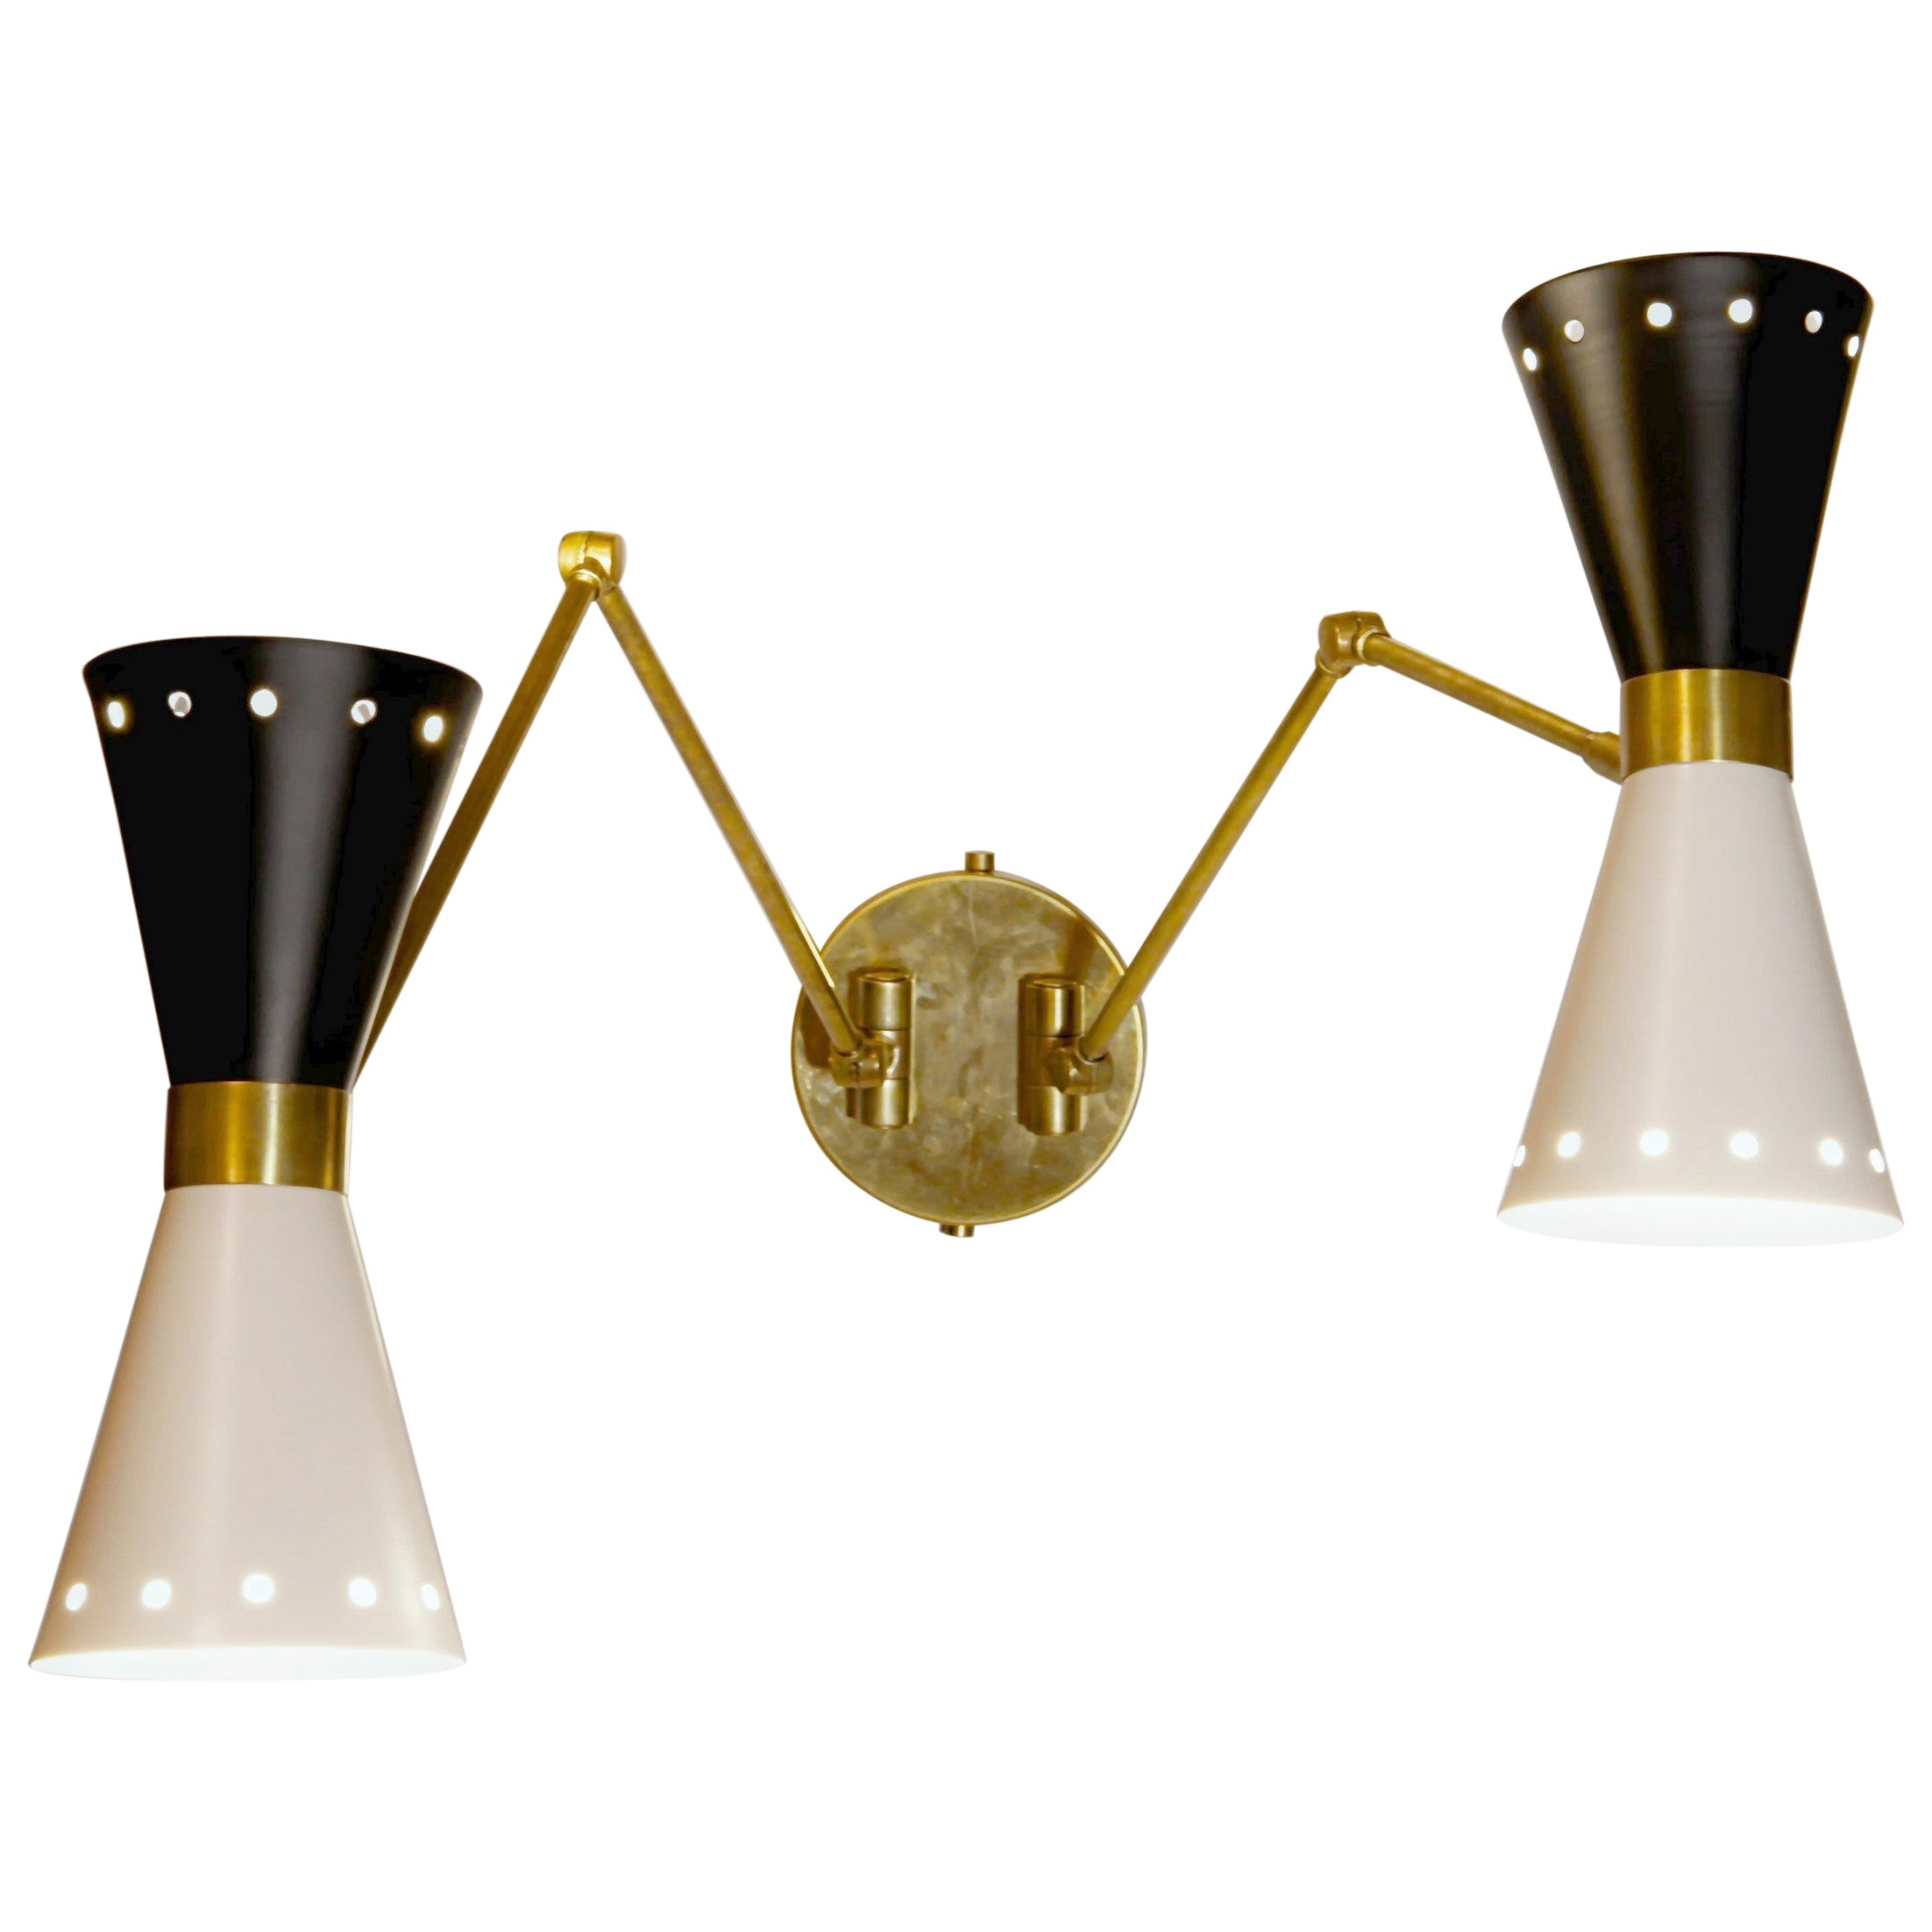 Doppio Double Articulated Sconce, Midcentury Stilnovo Style Solid Brass